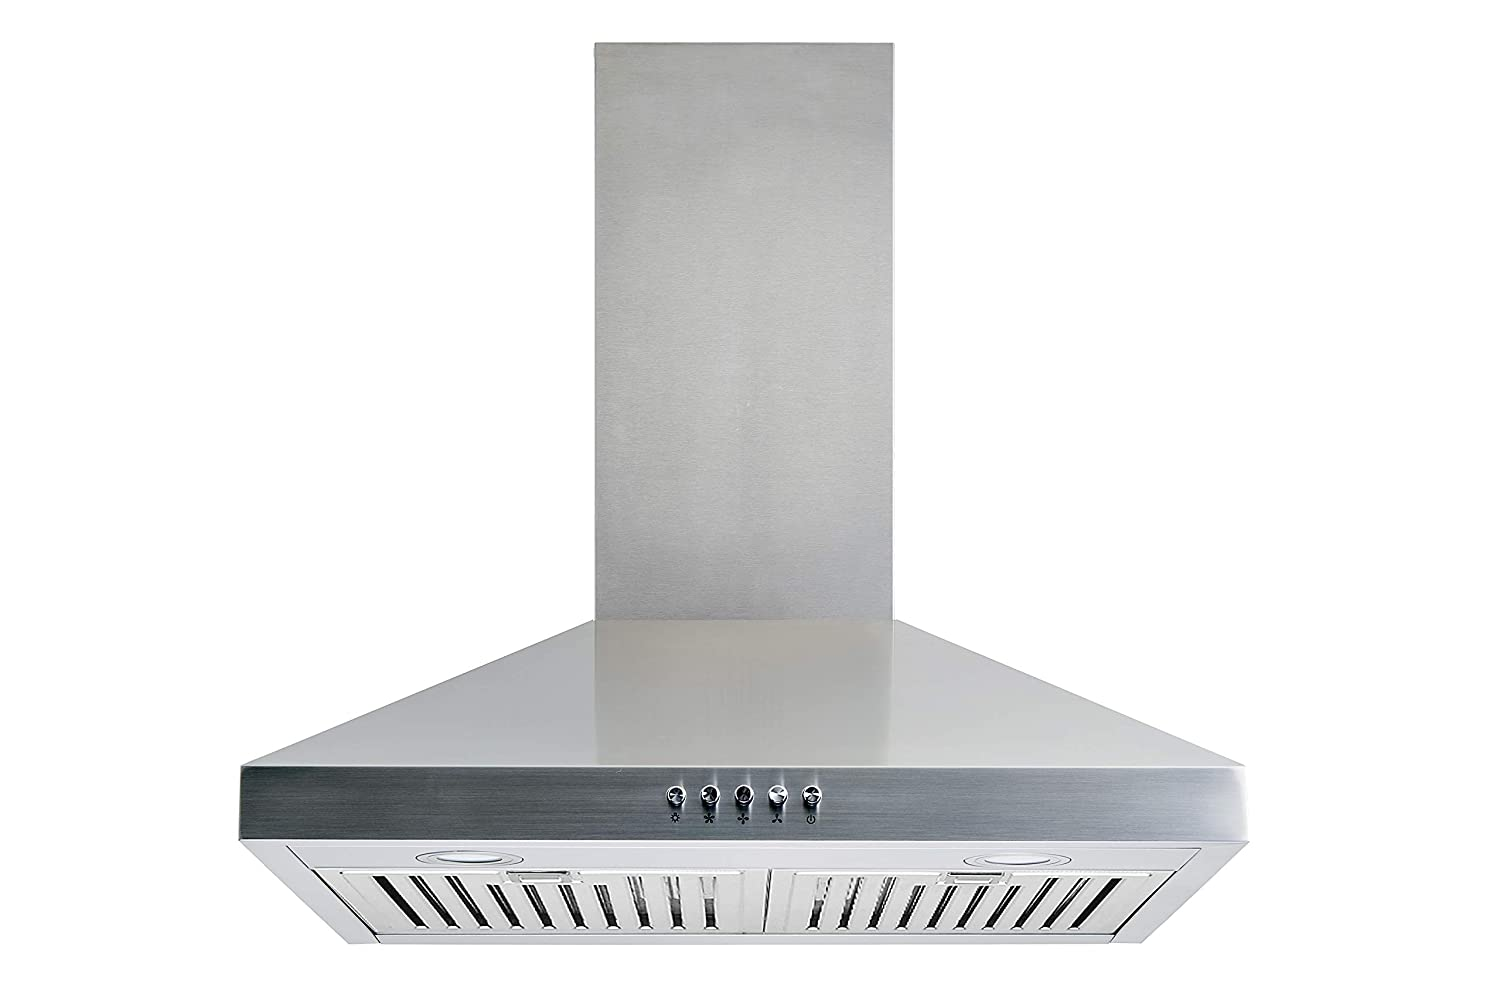 "Winflo 30"" Convertible Stainless Steel Wall Mount Range Hood with Stainless Steel Baffle filters, LED lights and 3 Speed Push Button Control"